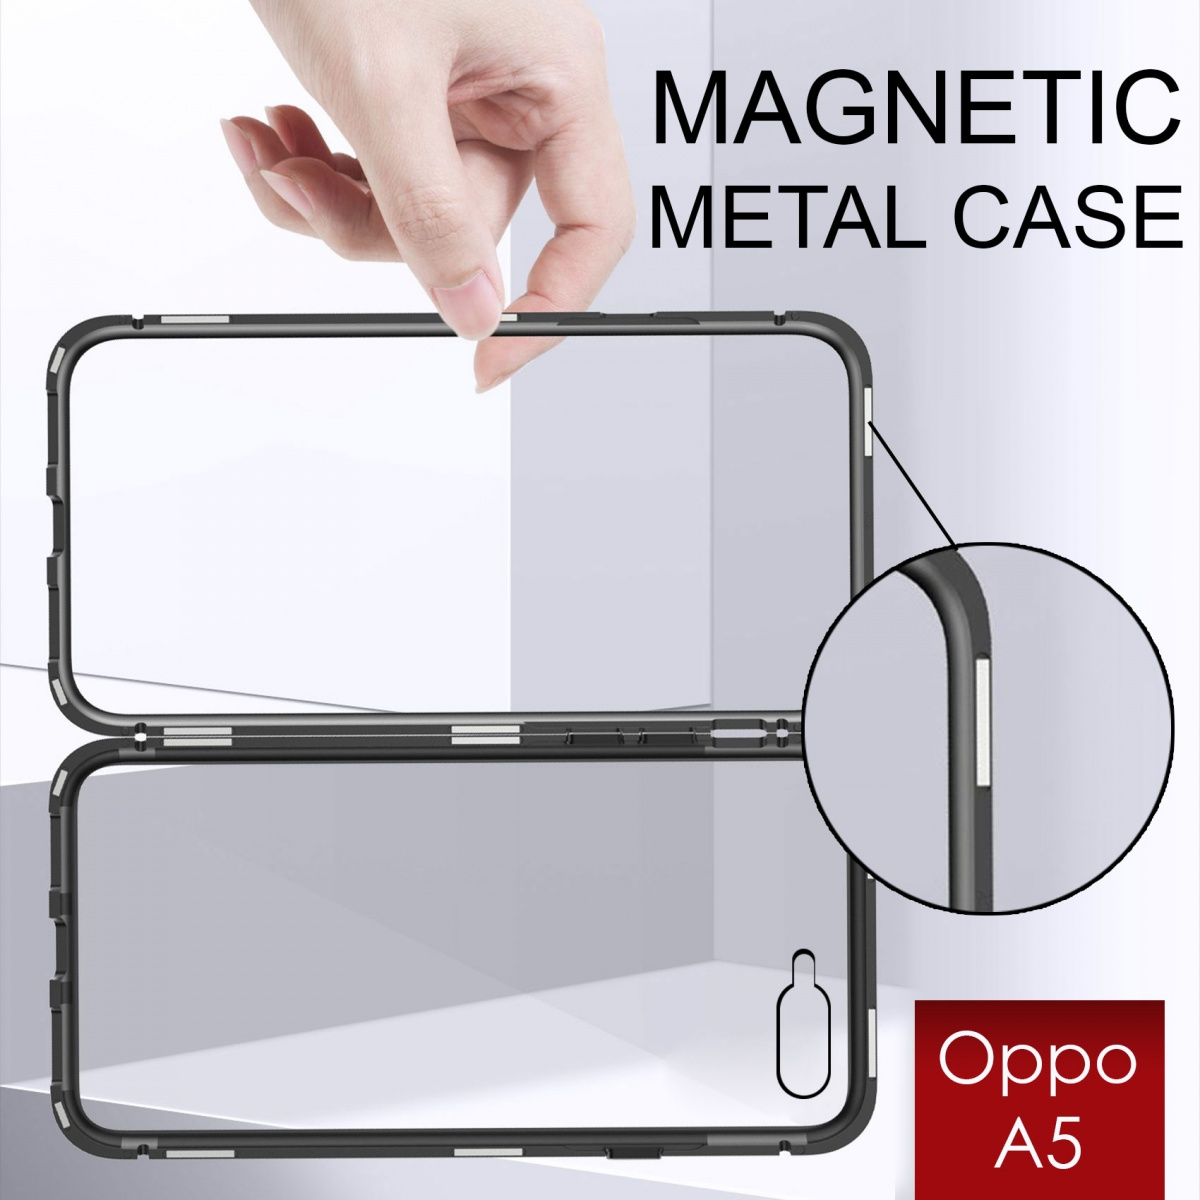 Oppo A5 Magnetic Metal Flip Phone Case - Black